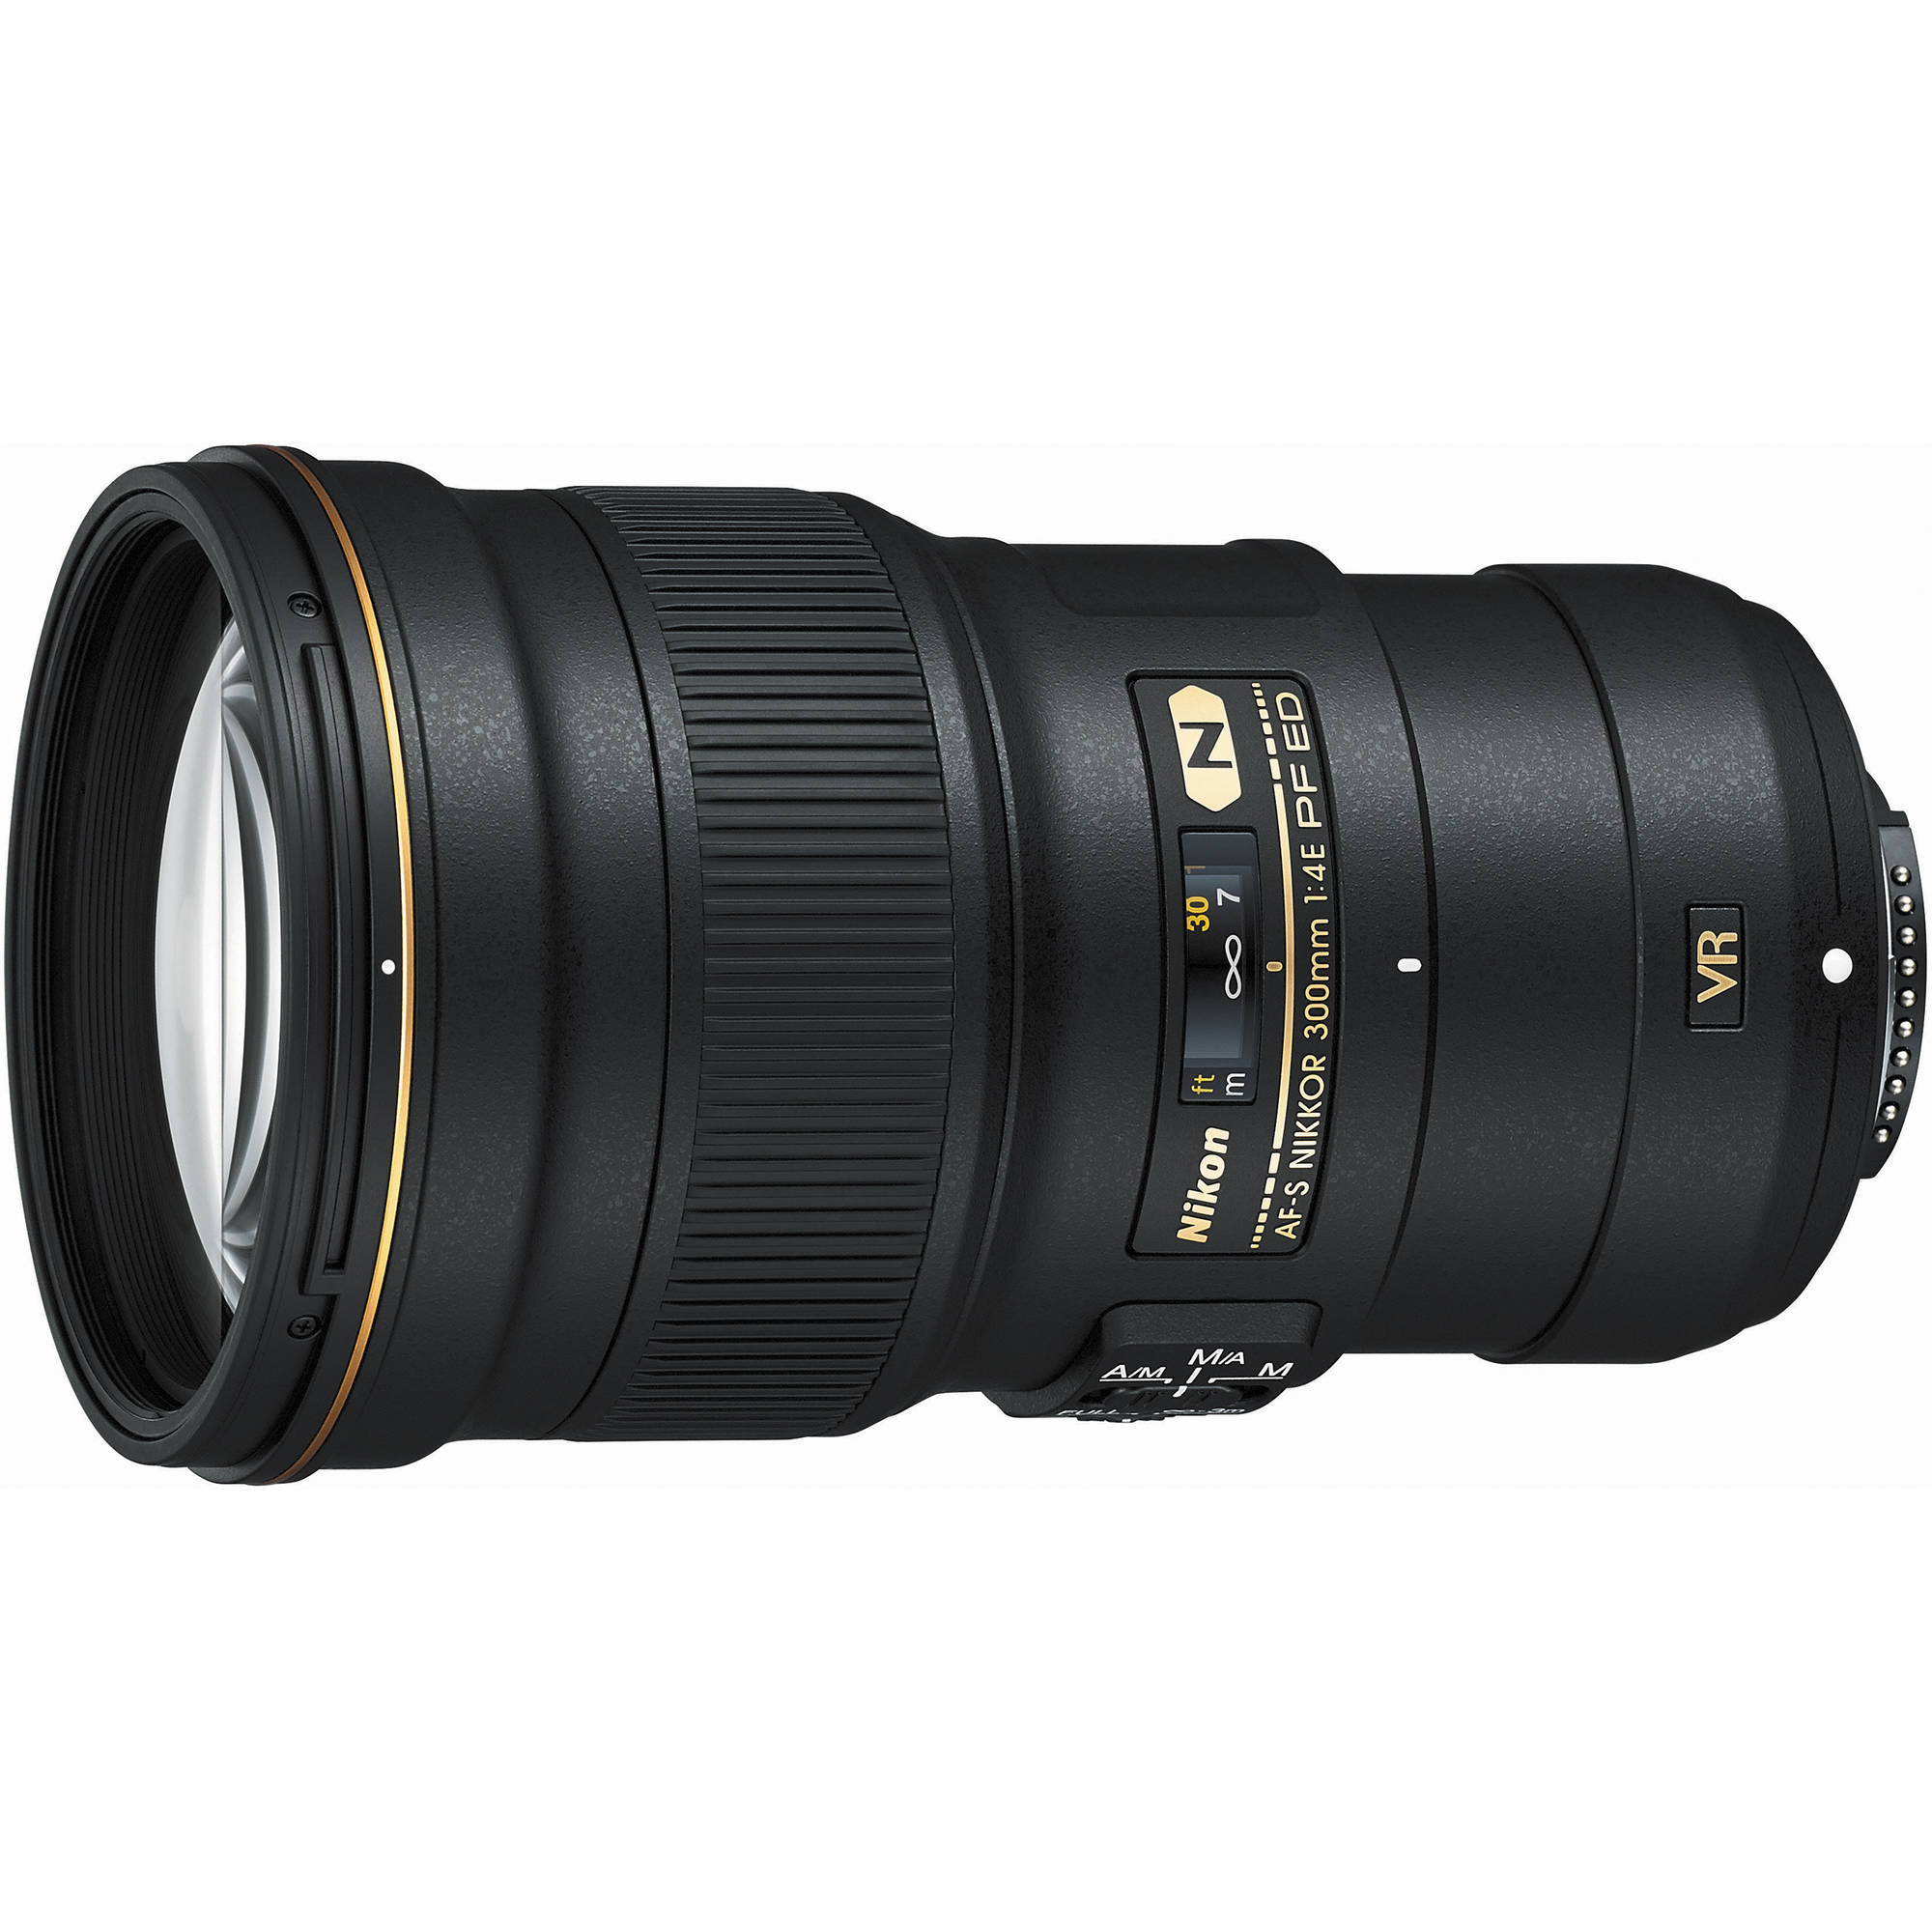 The Nikon 300mm f/4E PF ED VR lens incorporates a phase-fresnel element and weighs half as much as its predecessor.